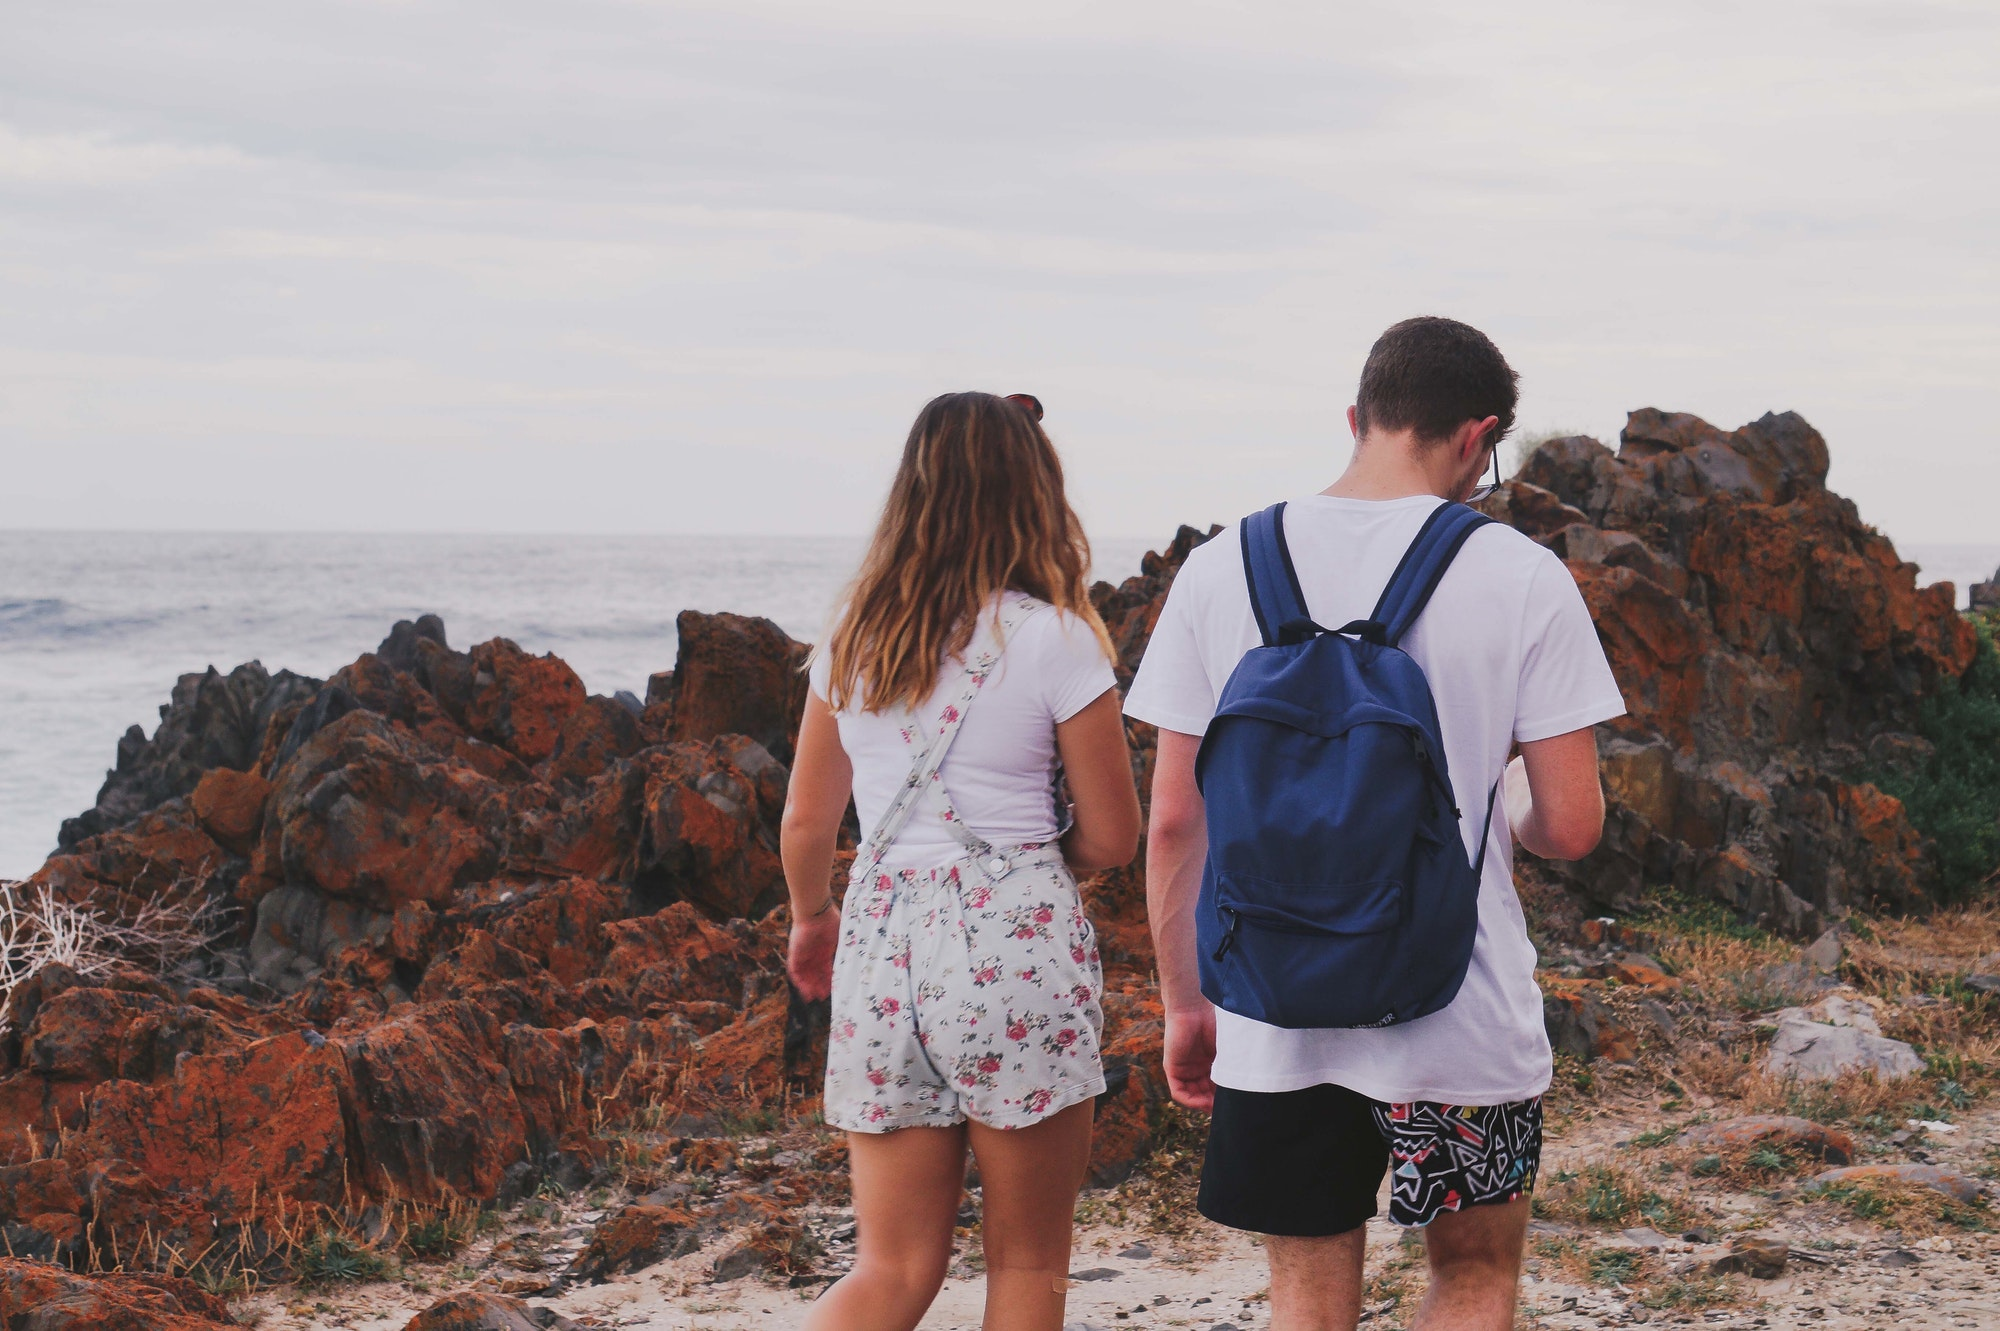 Six Short Reasons To Move To Australia – Even During a Pandemic